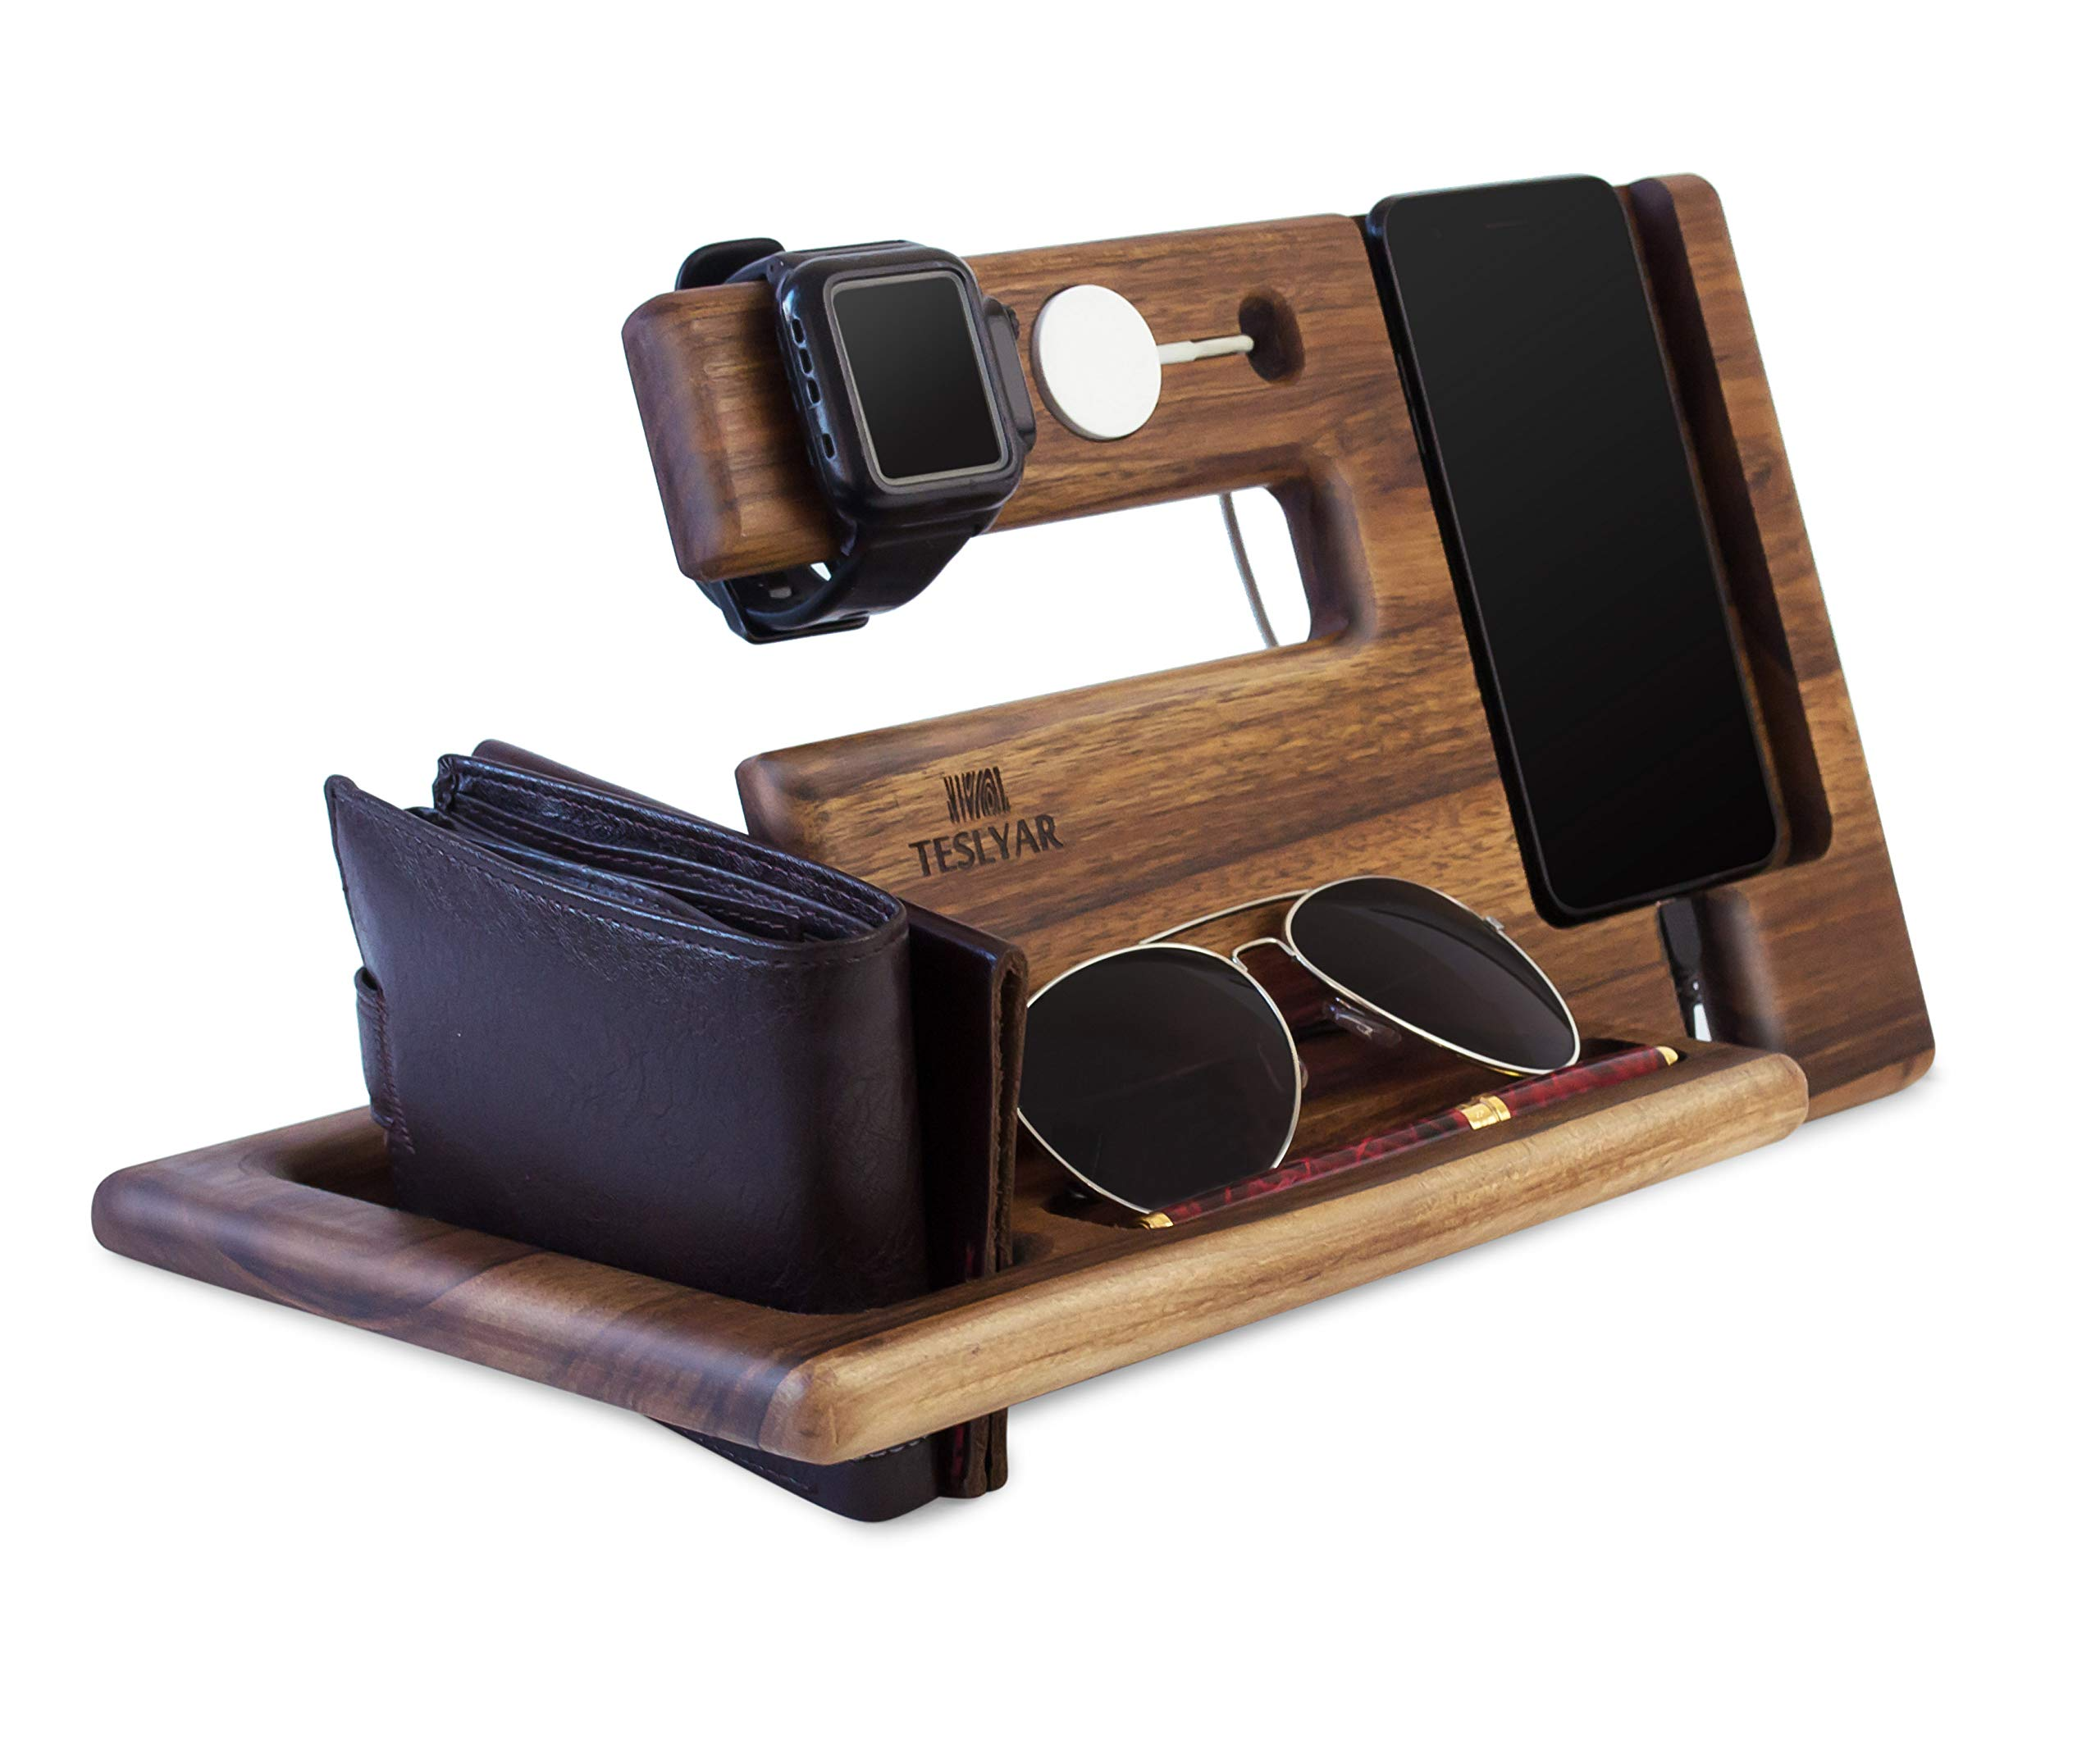 Wood Phone Docking Station Walnut Key Holder Wallet Stand Magnetic Watch Charger Slot Organizer Men Gift Husband Wife Anniversary Dad Birthday Nightstand Tablet Father Graduation Male Travel Idea